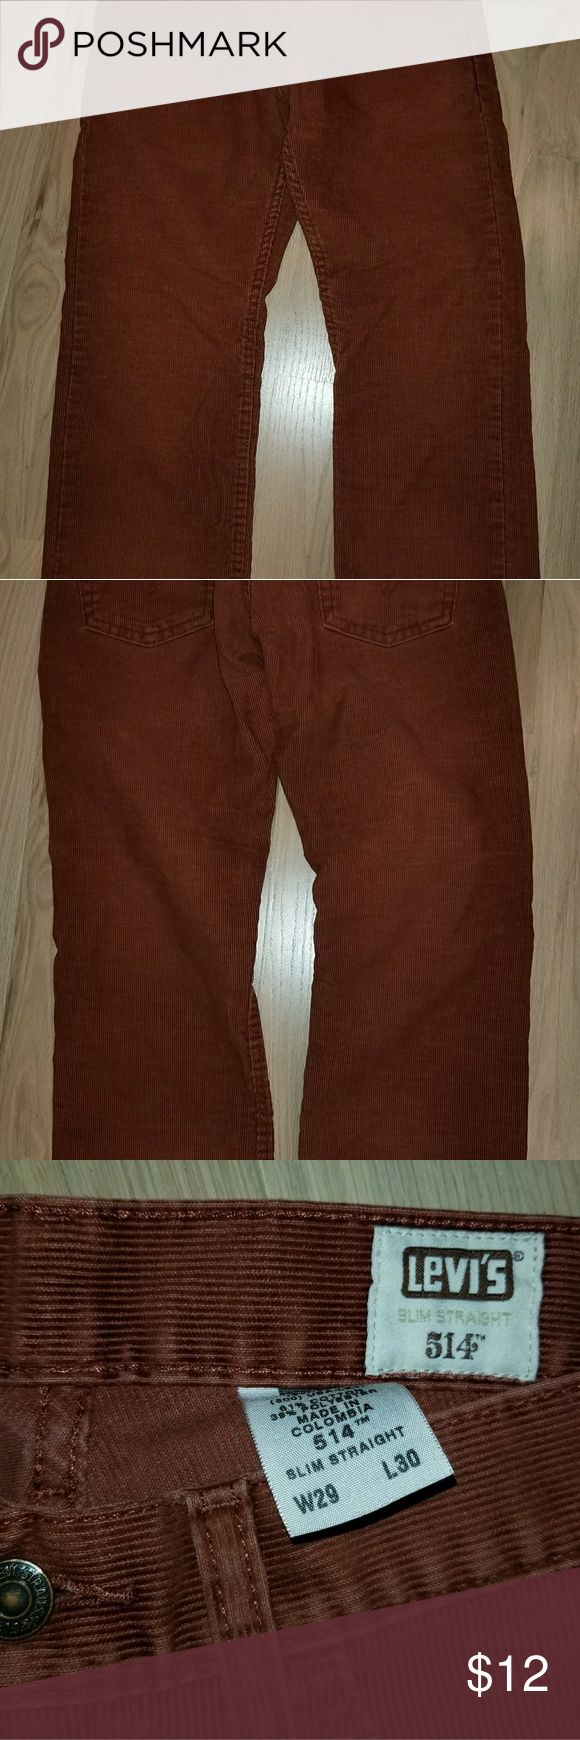 Levis corduroy jeans 514 straight leg burnt Orange cords.  Perfect for a Texas football game in the fall.  New and never worn perfect condition smoke/pet free home 29 waist 30 length Levi's Jeans Straight Leg